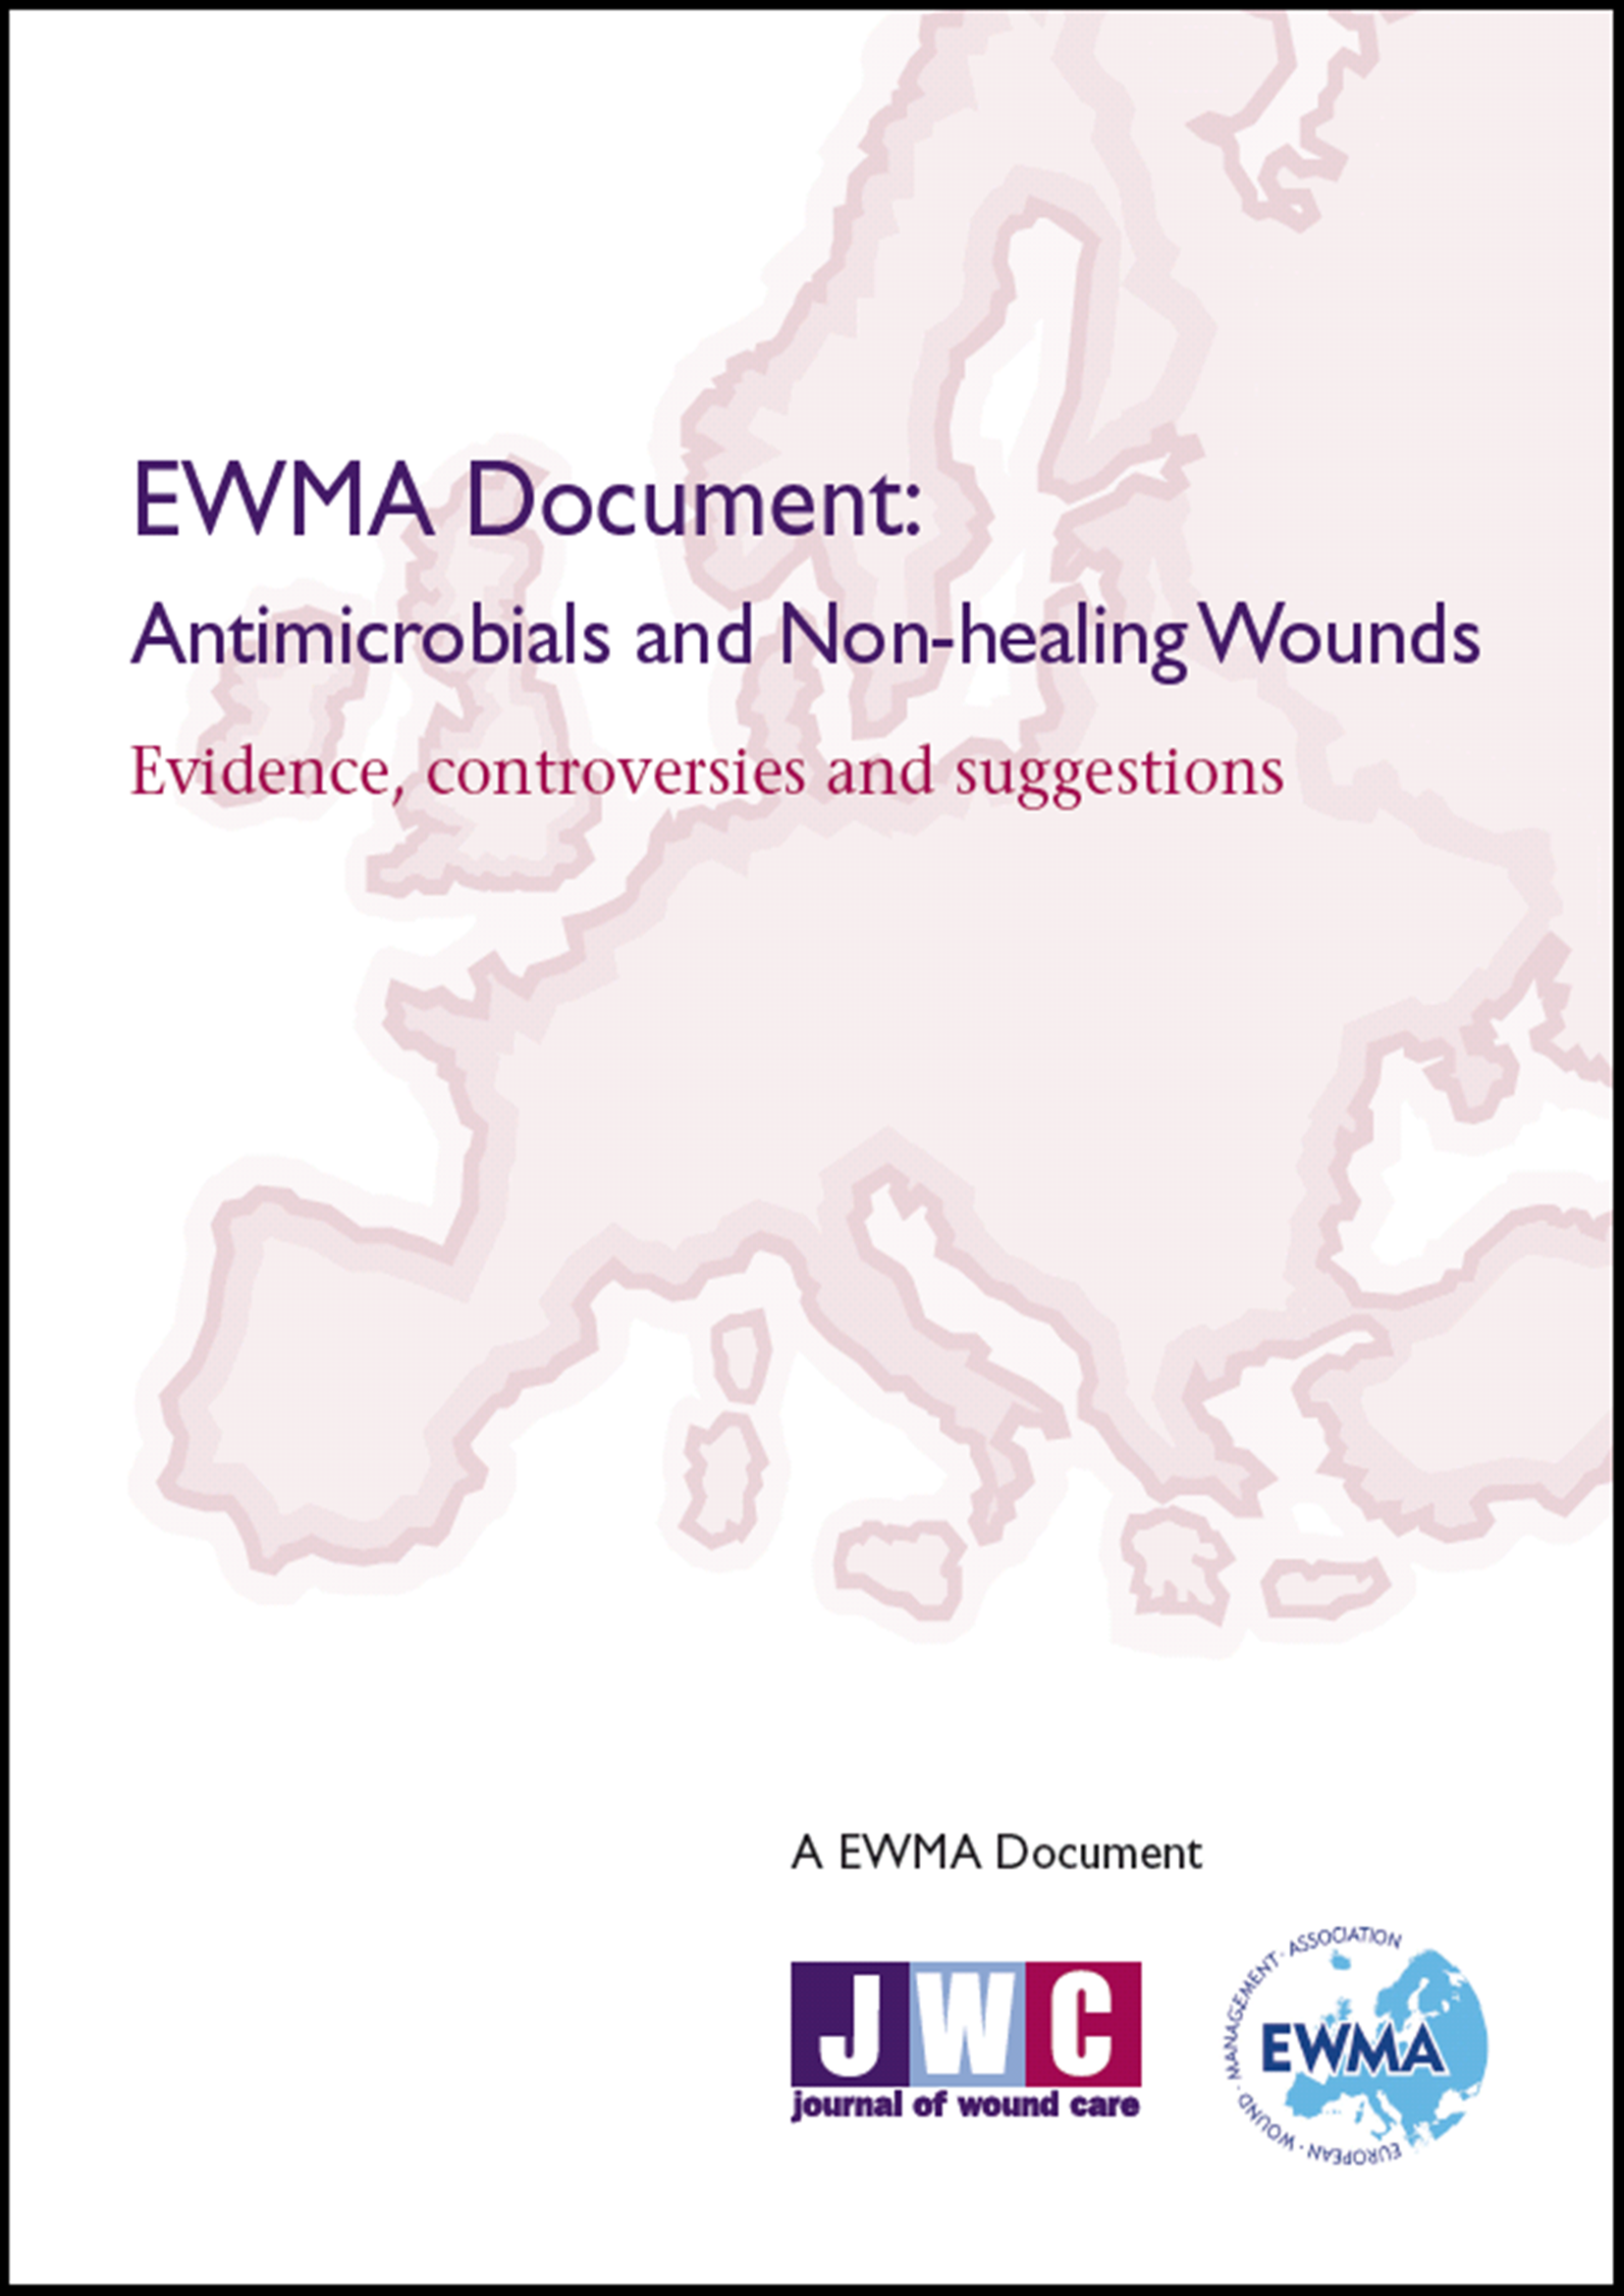 EWMA - Antimicrobials and Non-healing Wounds